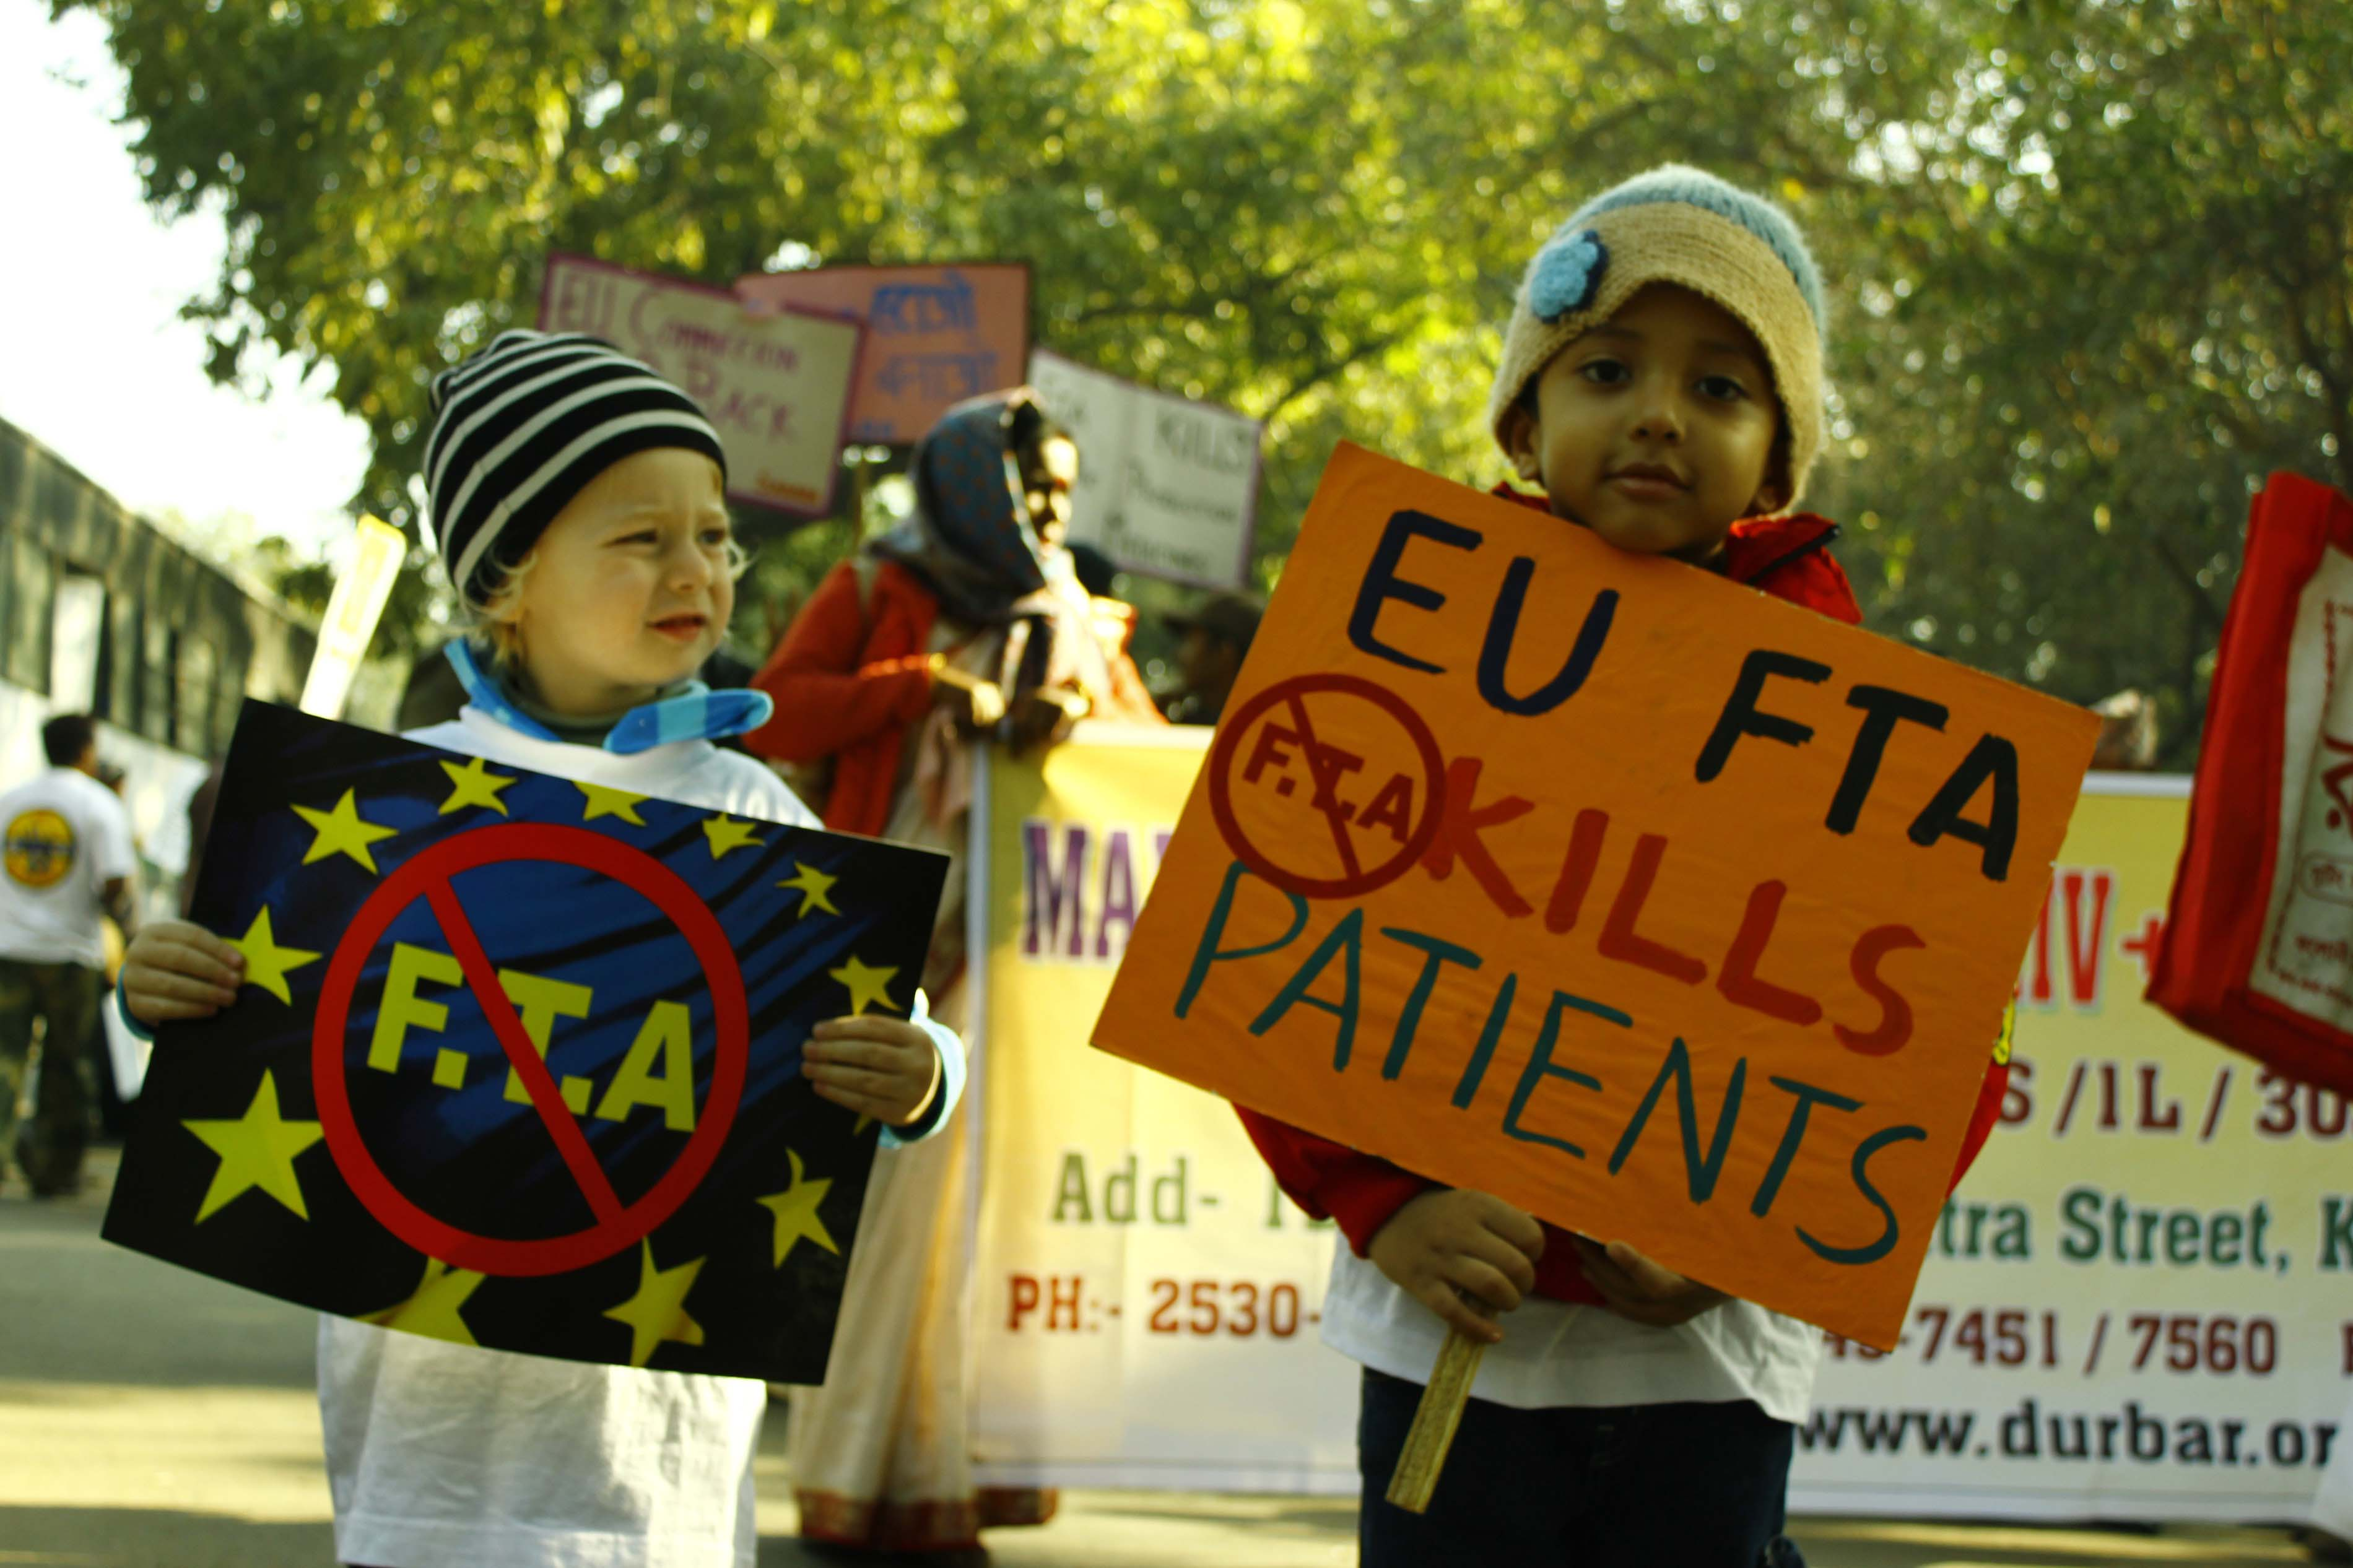 Nearly 2,000 People Living With HIV along with MSF & other civil society organisations rallied in the streets of New Delhi at the start of the EU-India summit. They warned that harmful provisions in a trade deal being negotiated between the EU and India could severely hinder access to affordable medicine for people in developing countries.